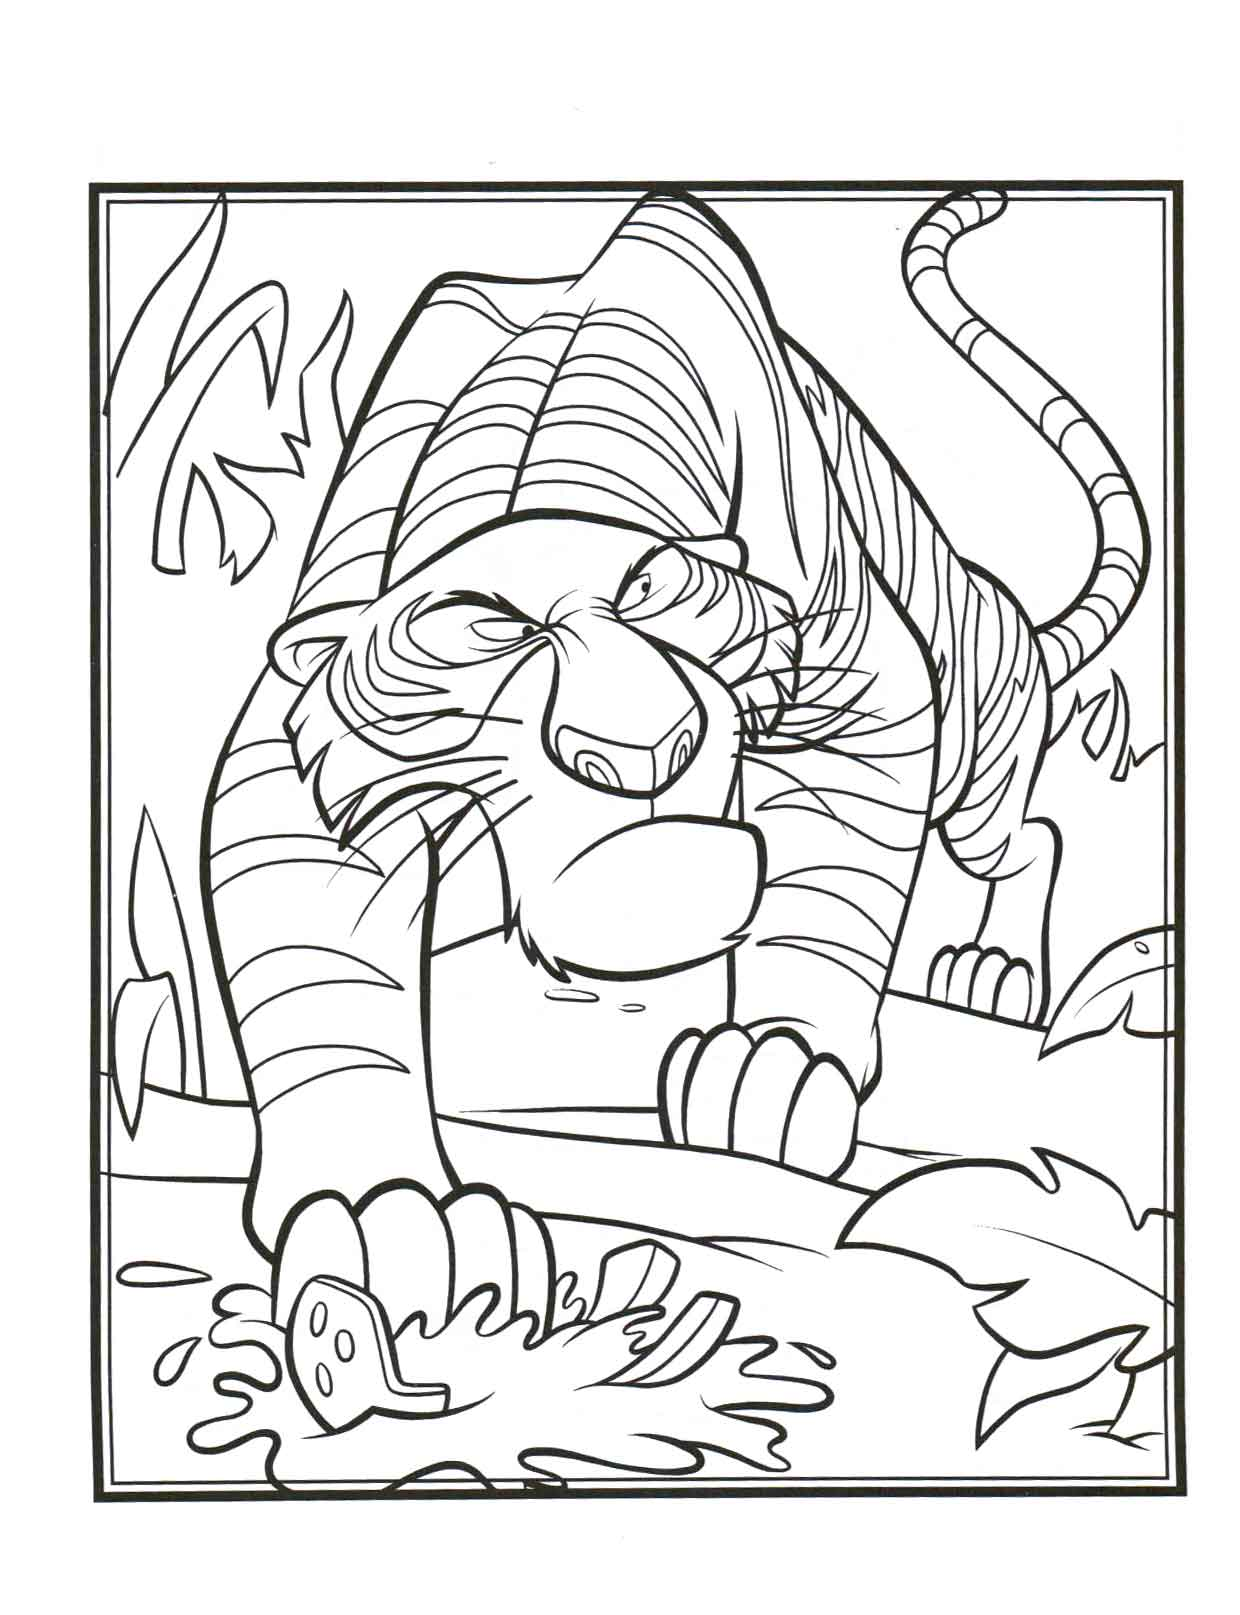 jungle-book-coloring-page-0004-q1